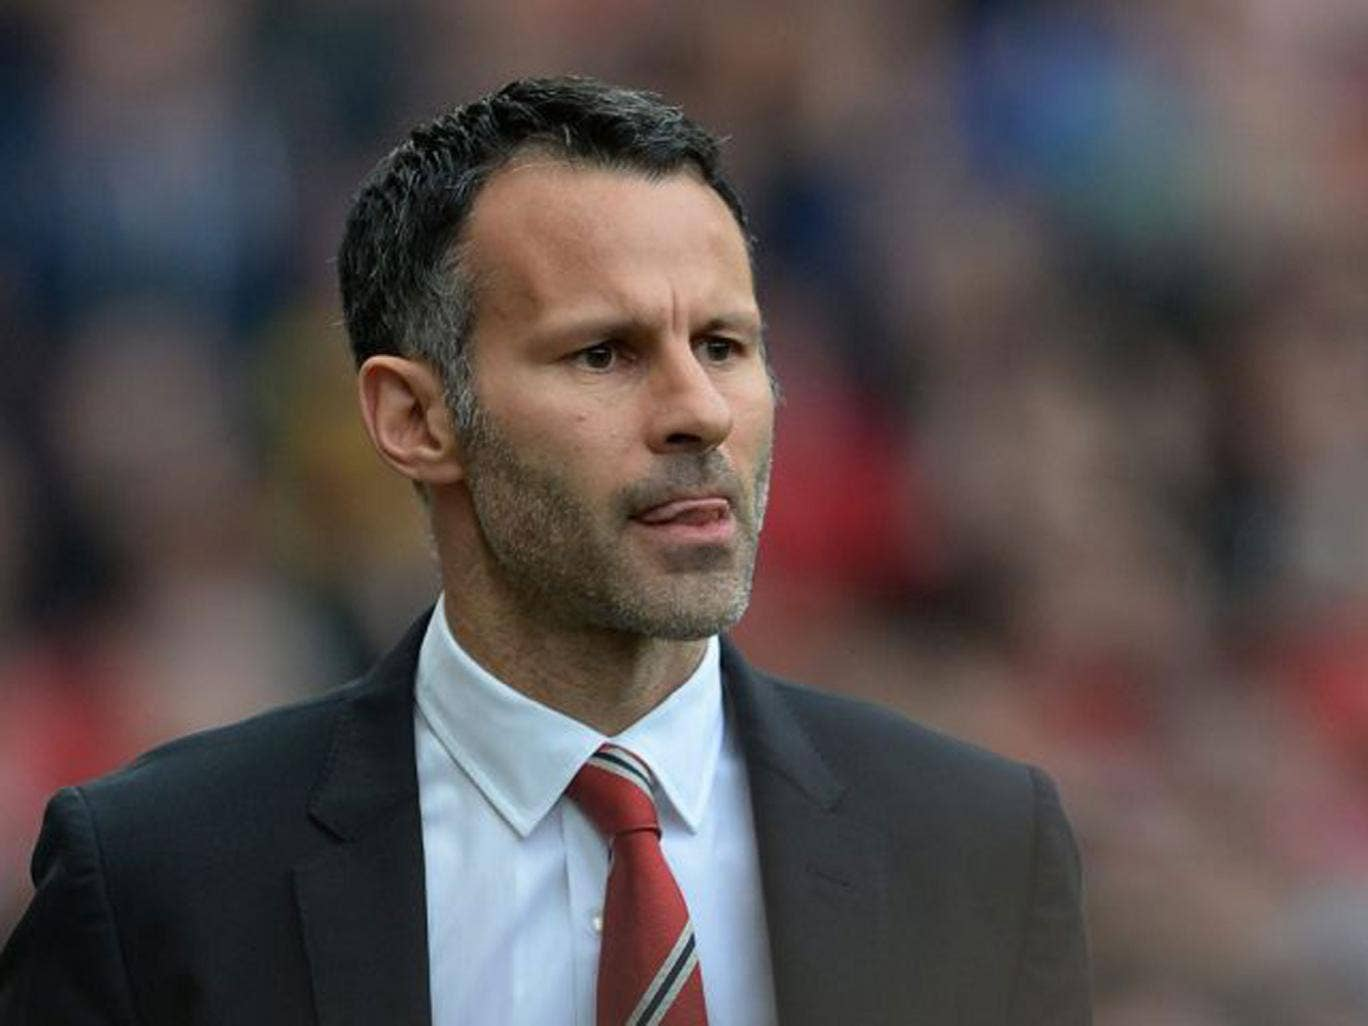 The support for Ryan Giggs to lead Manchester United full time is growing